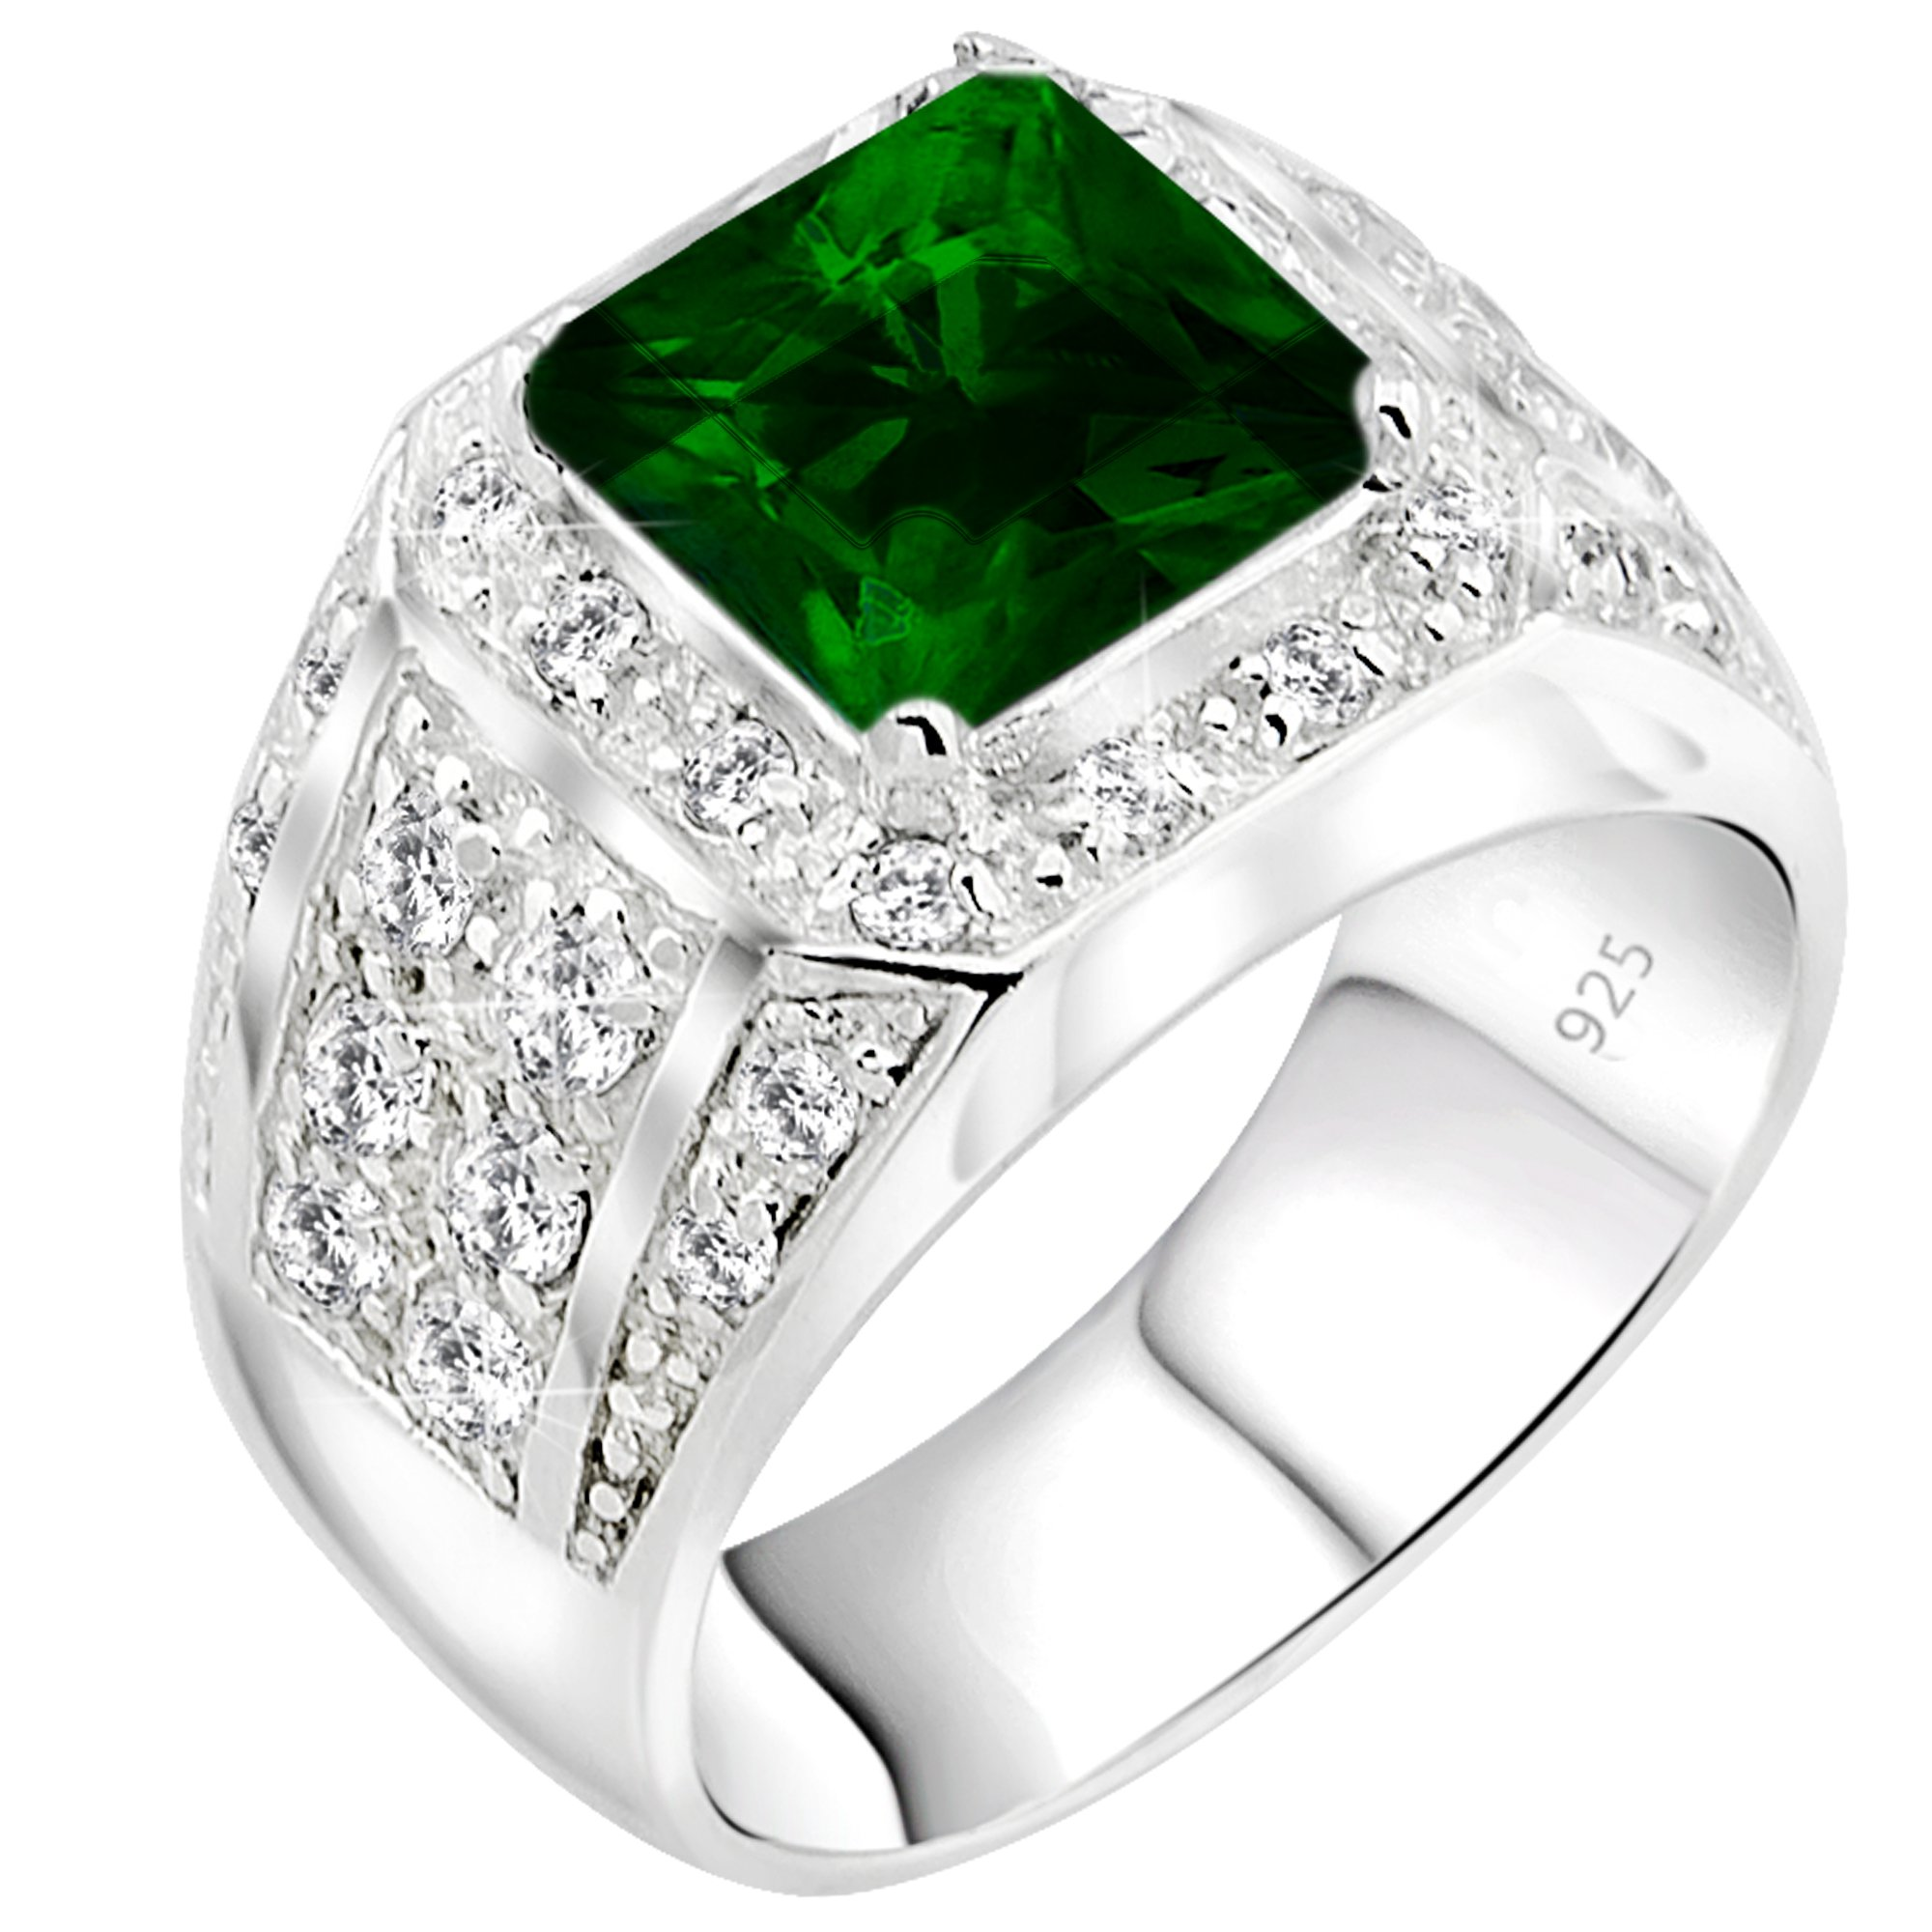 Men's Elegant Sterling Silver .925 Ring High Polish Princess Cut Featuring a Synthetic Green Emerald and 32 Fancy Round Cubic Zirconia (CZ) Stones